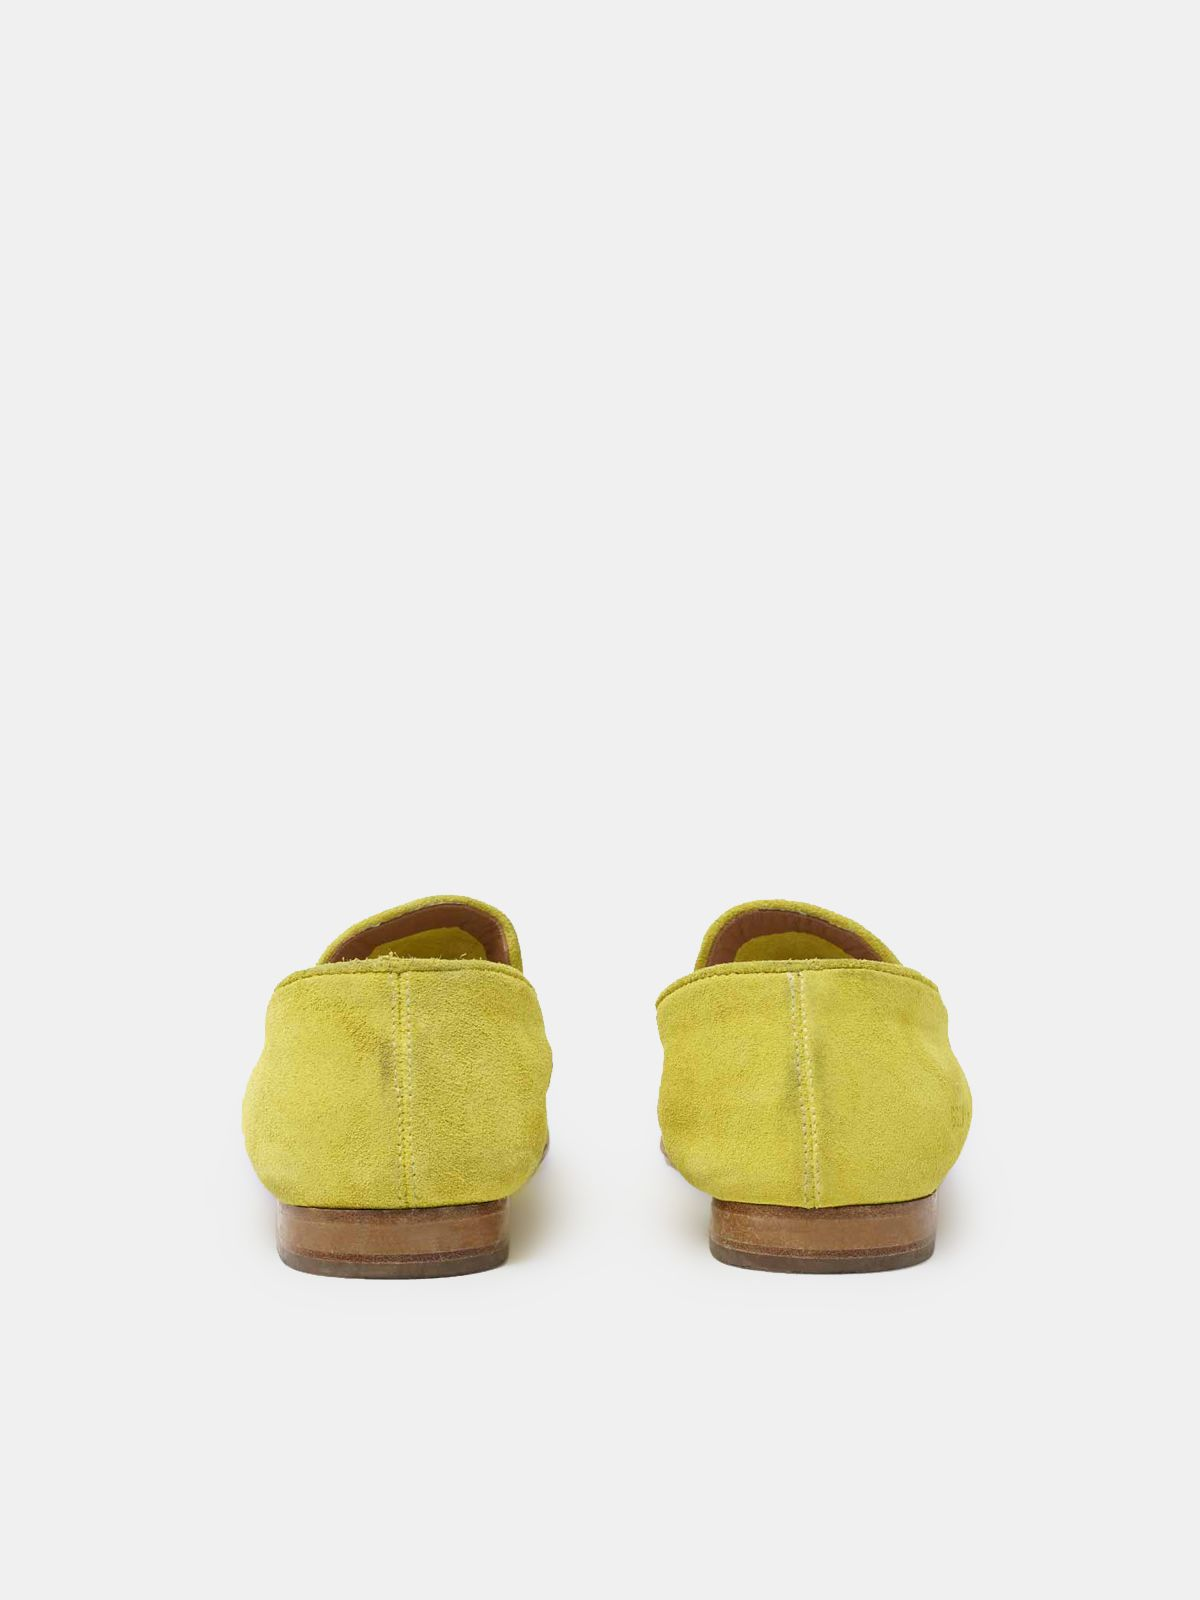 Golden Goose - Virginia loafers in yellow suede leather in